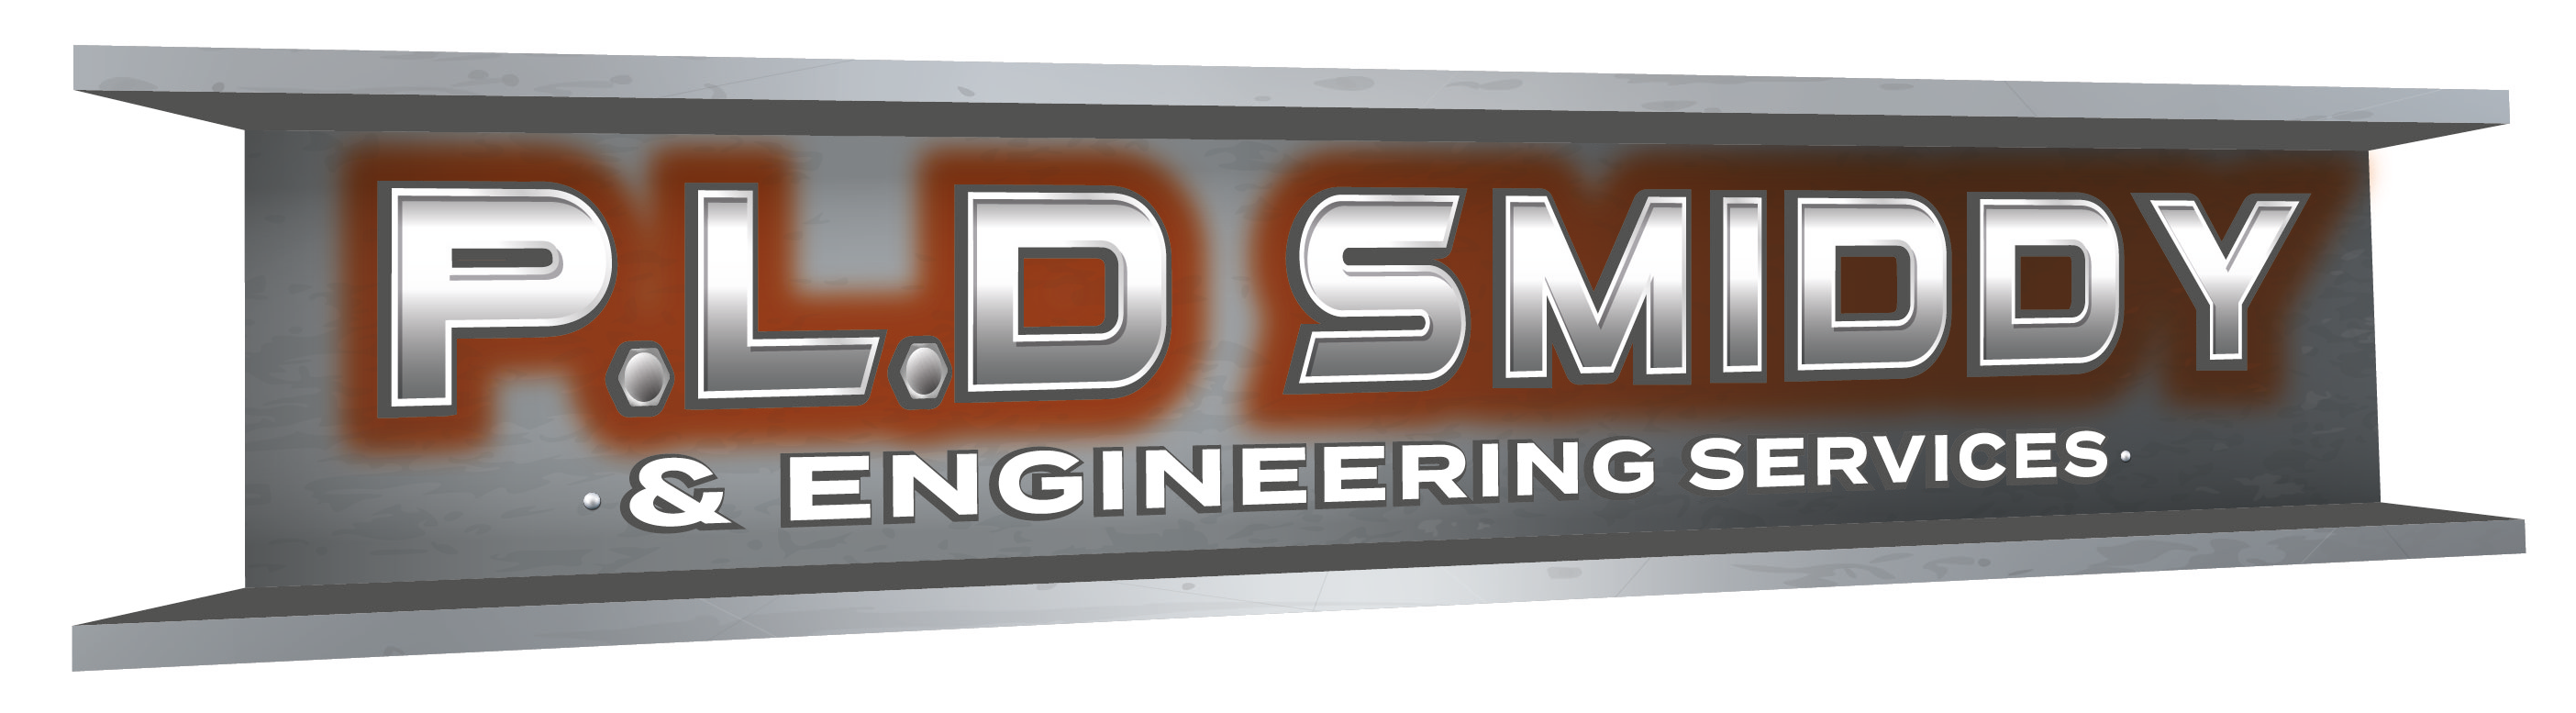 PLD Smiddy Engineering & Welding